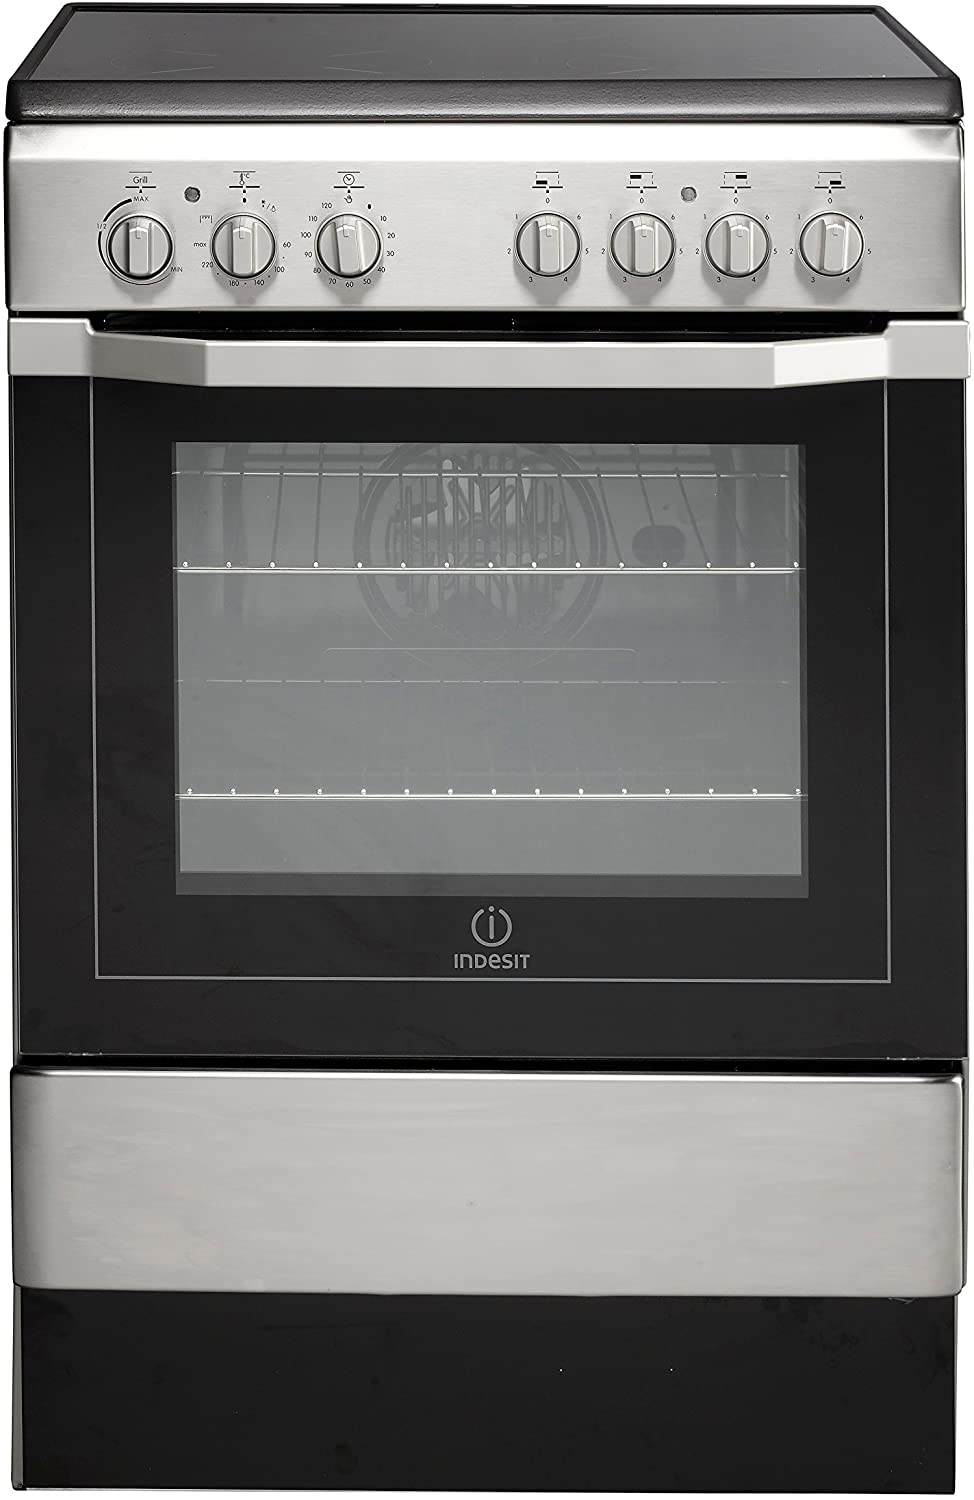 Image of Indesit I6VV2AXUK 60cm Single Oven Electric Cooker with Ceramic Hob